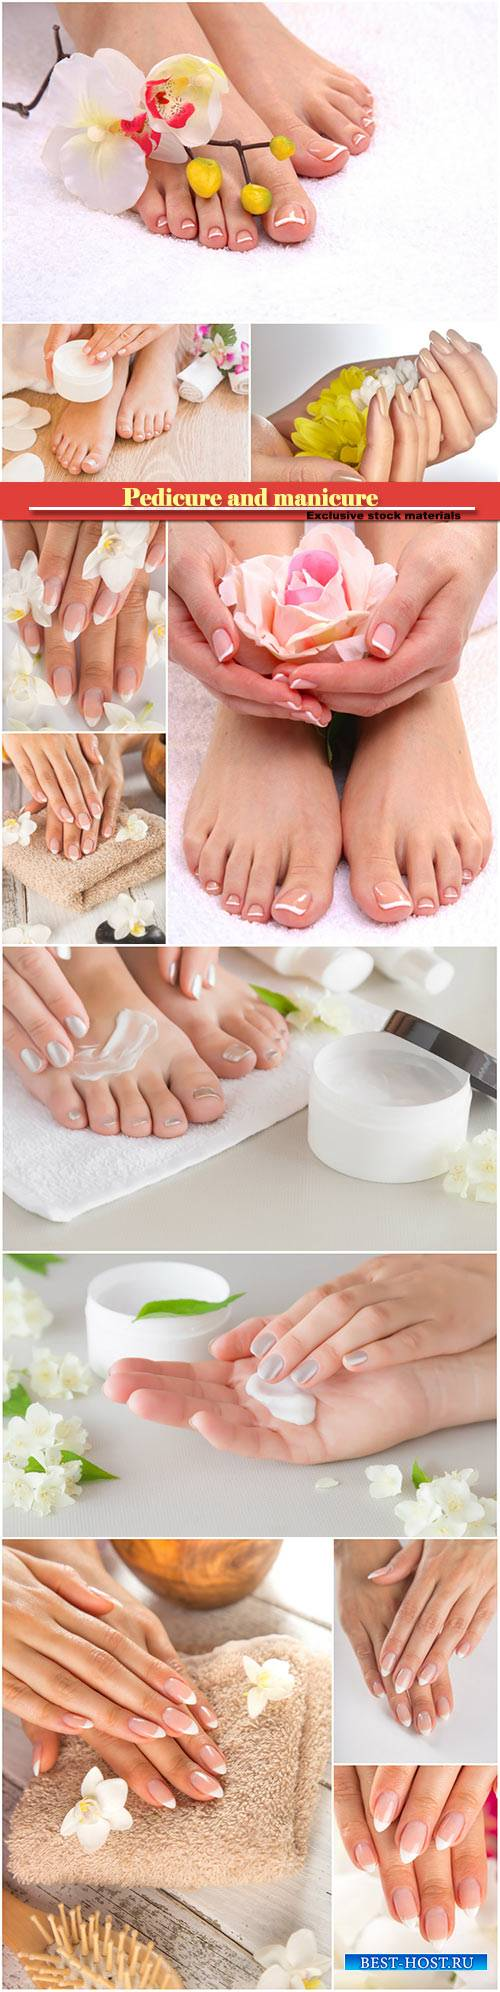 Photo of a beautiful female feet with pedicure and manicure